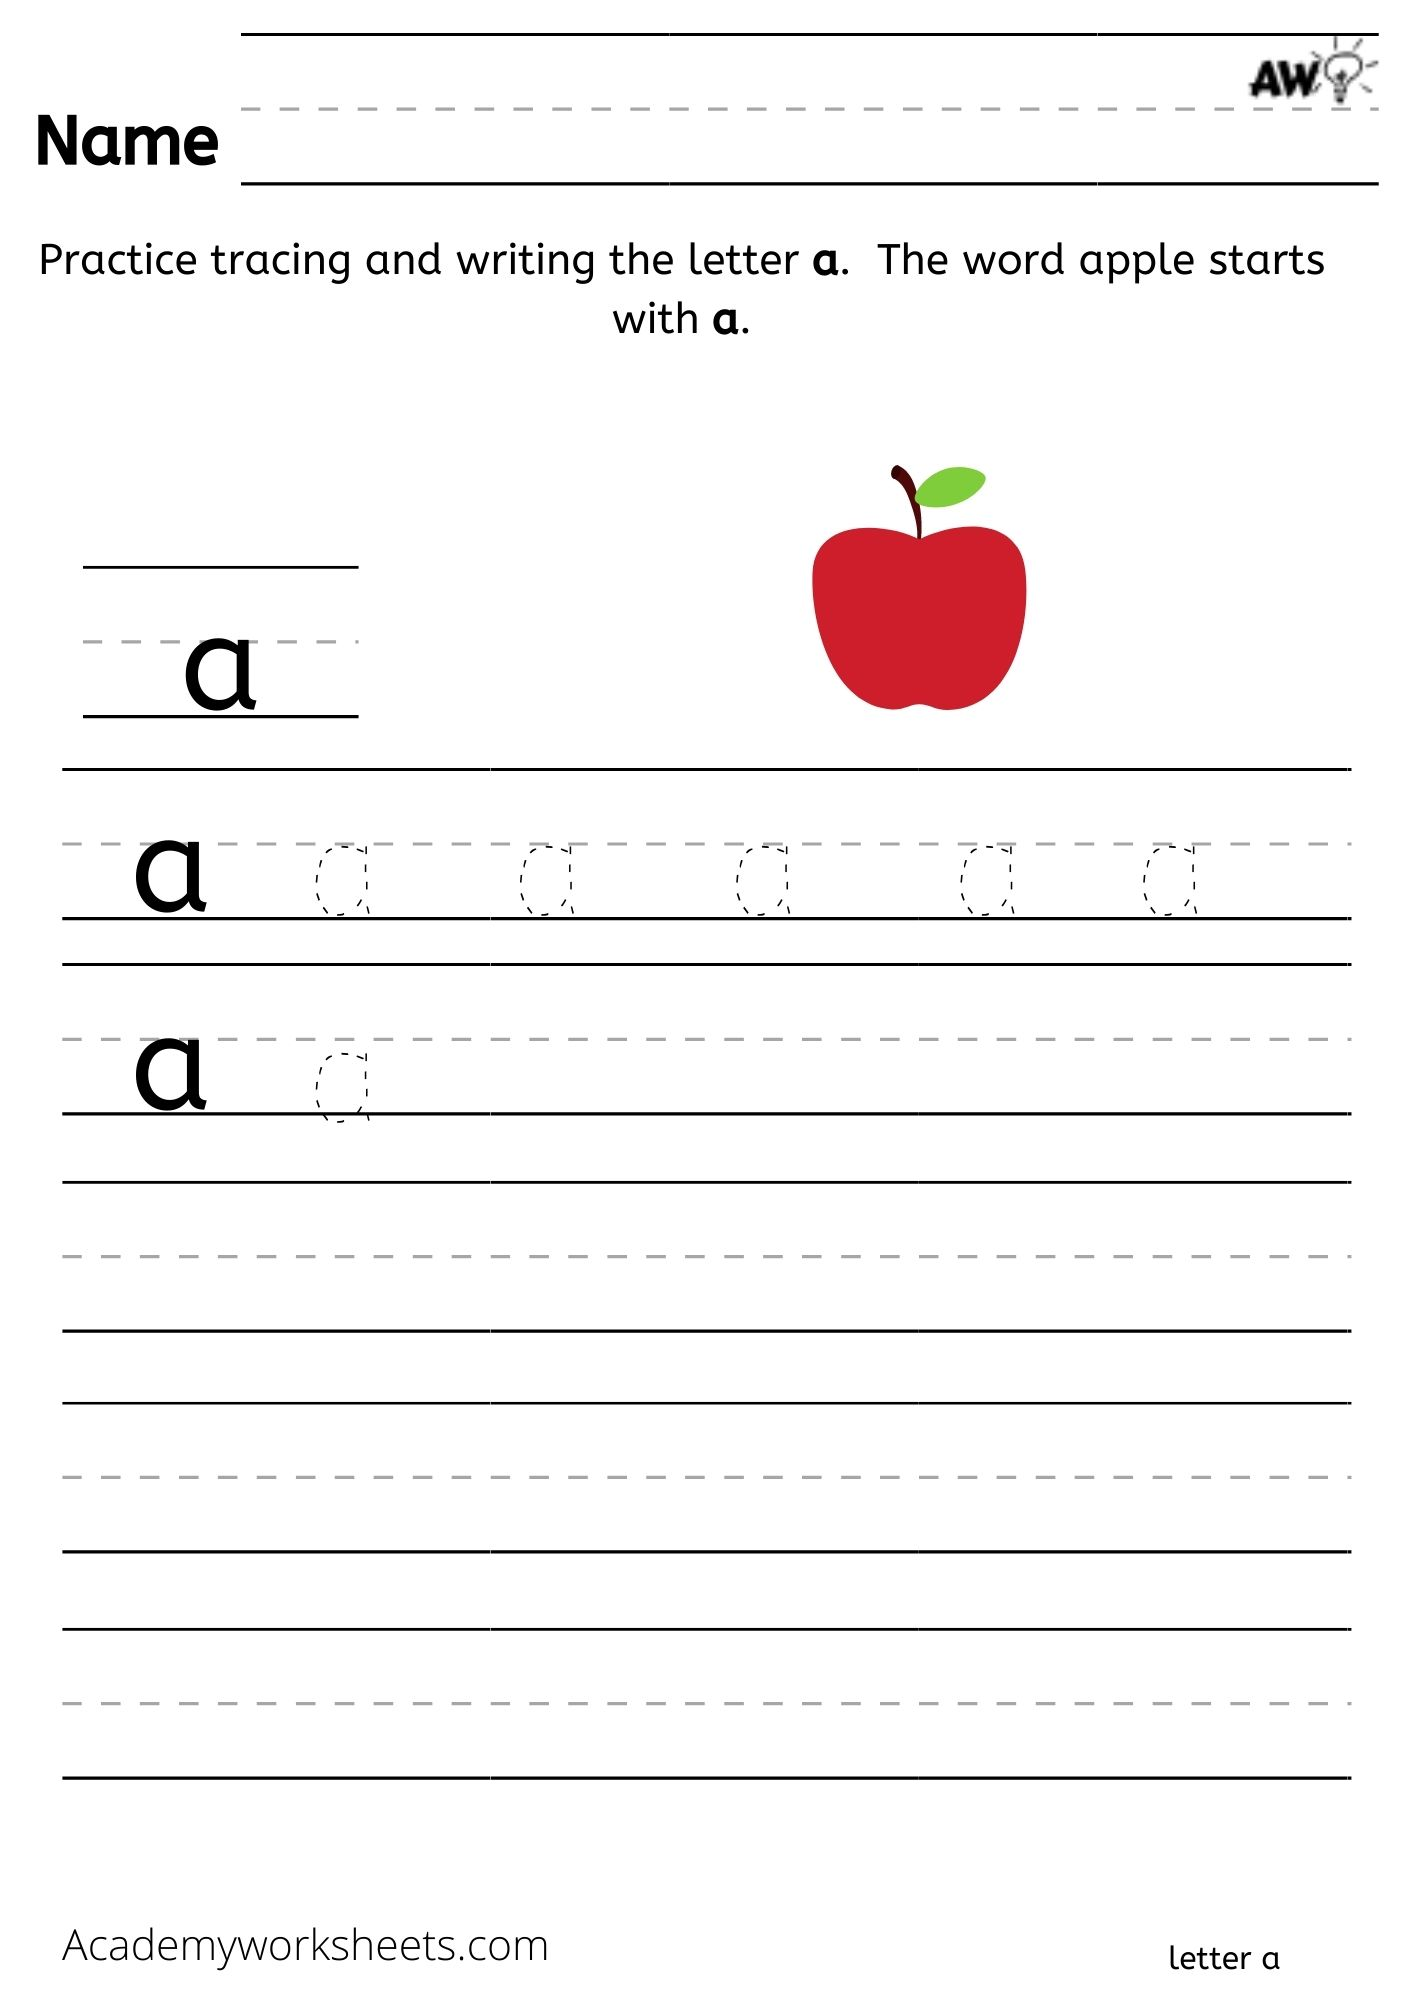 write trace the letter a